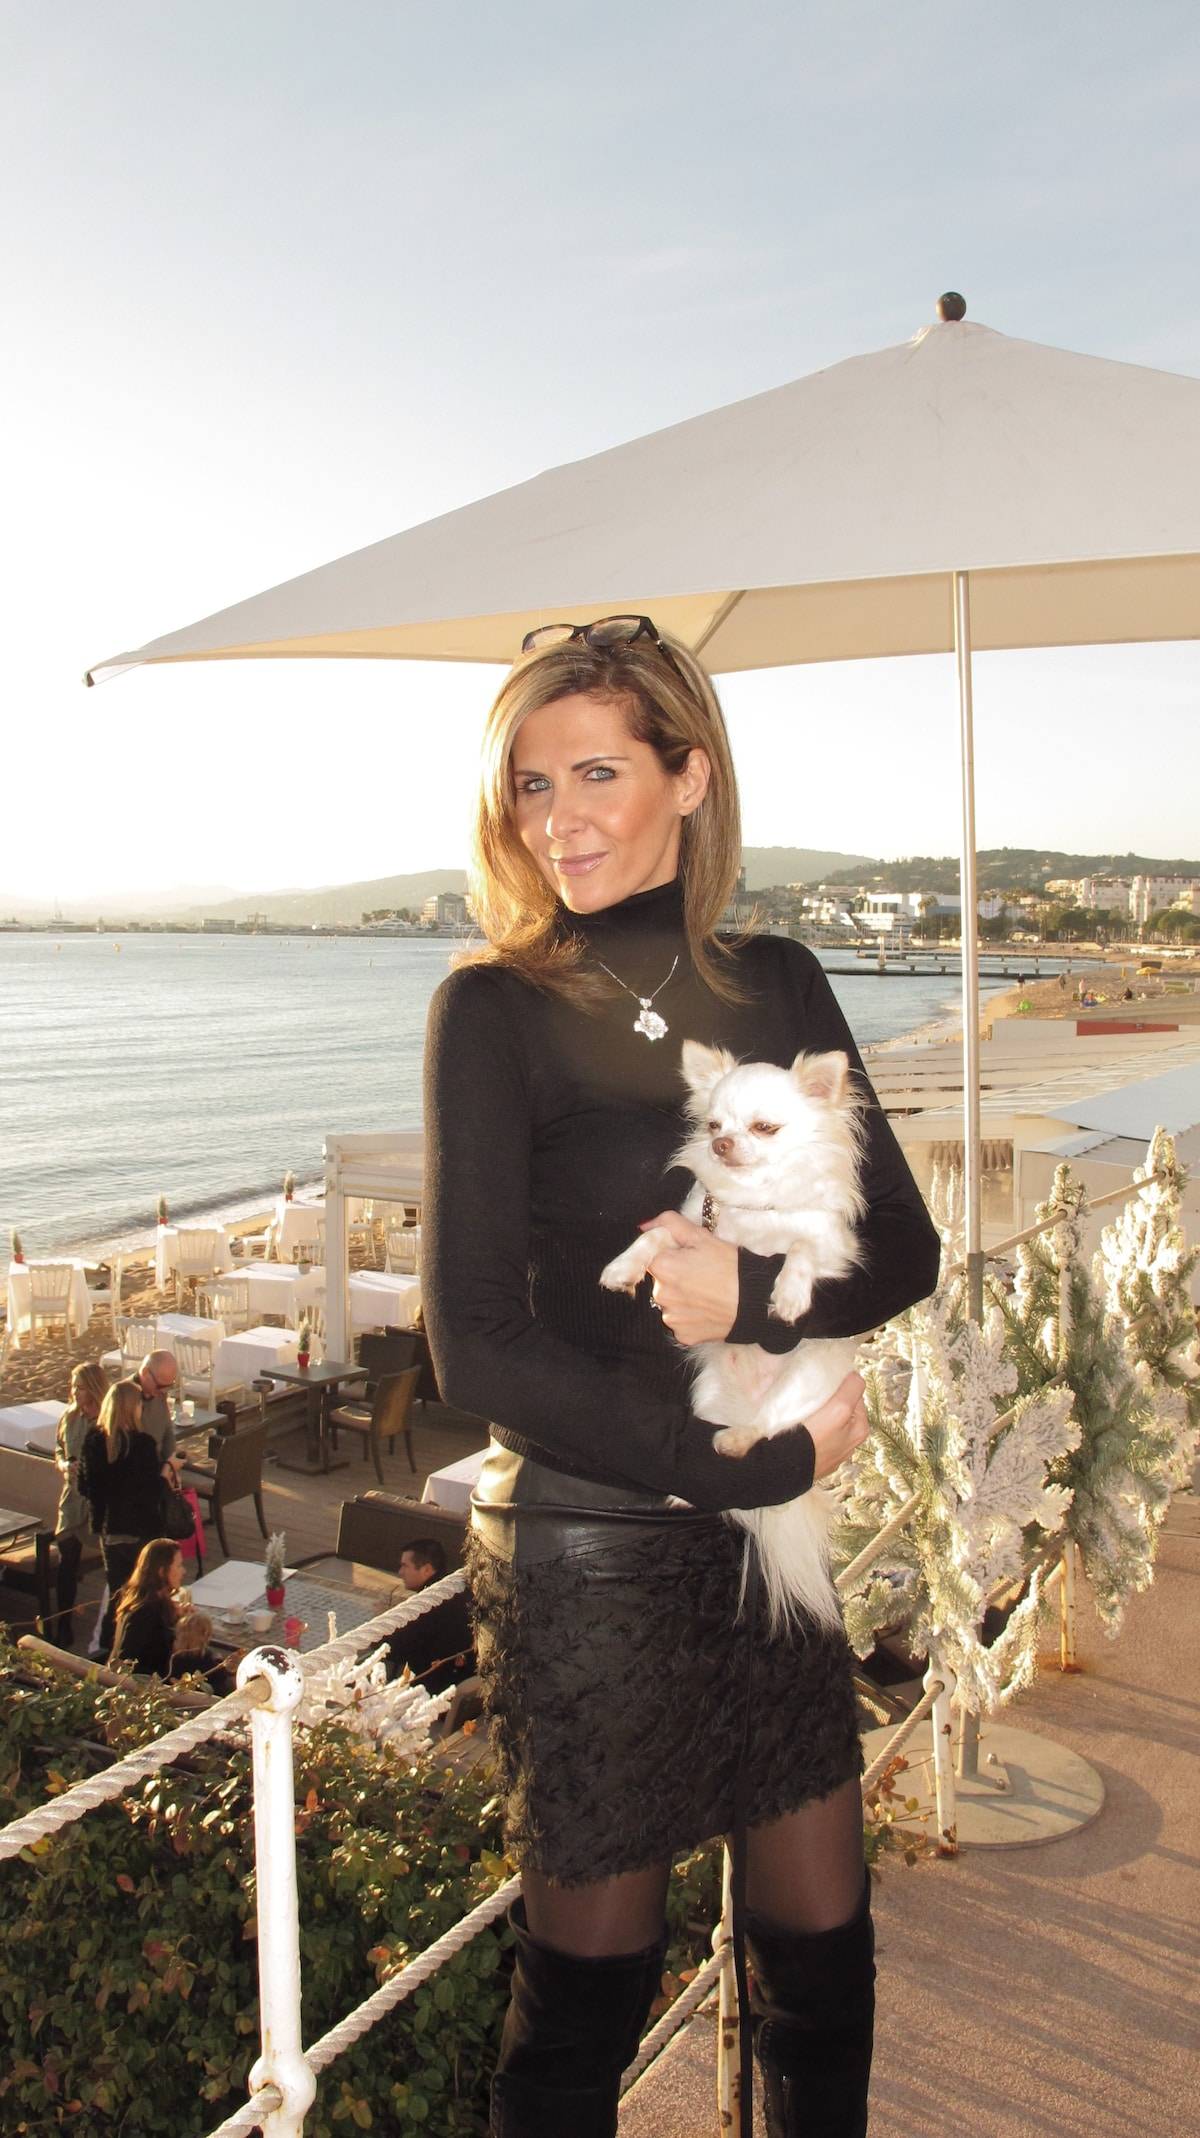 Marie from Cannes